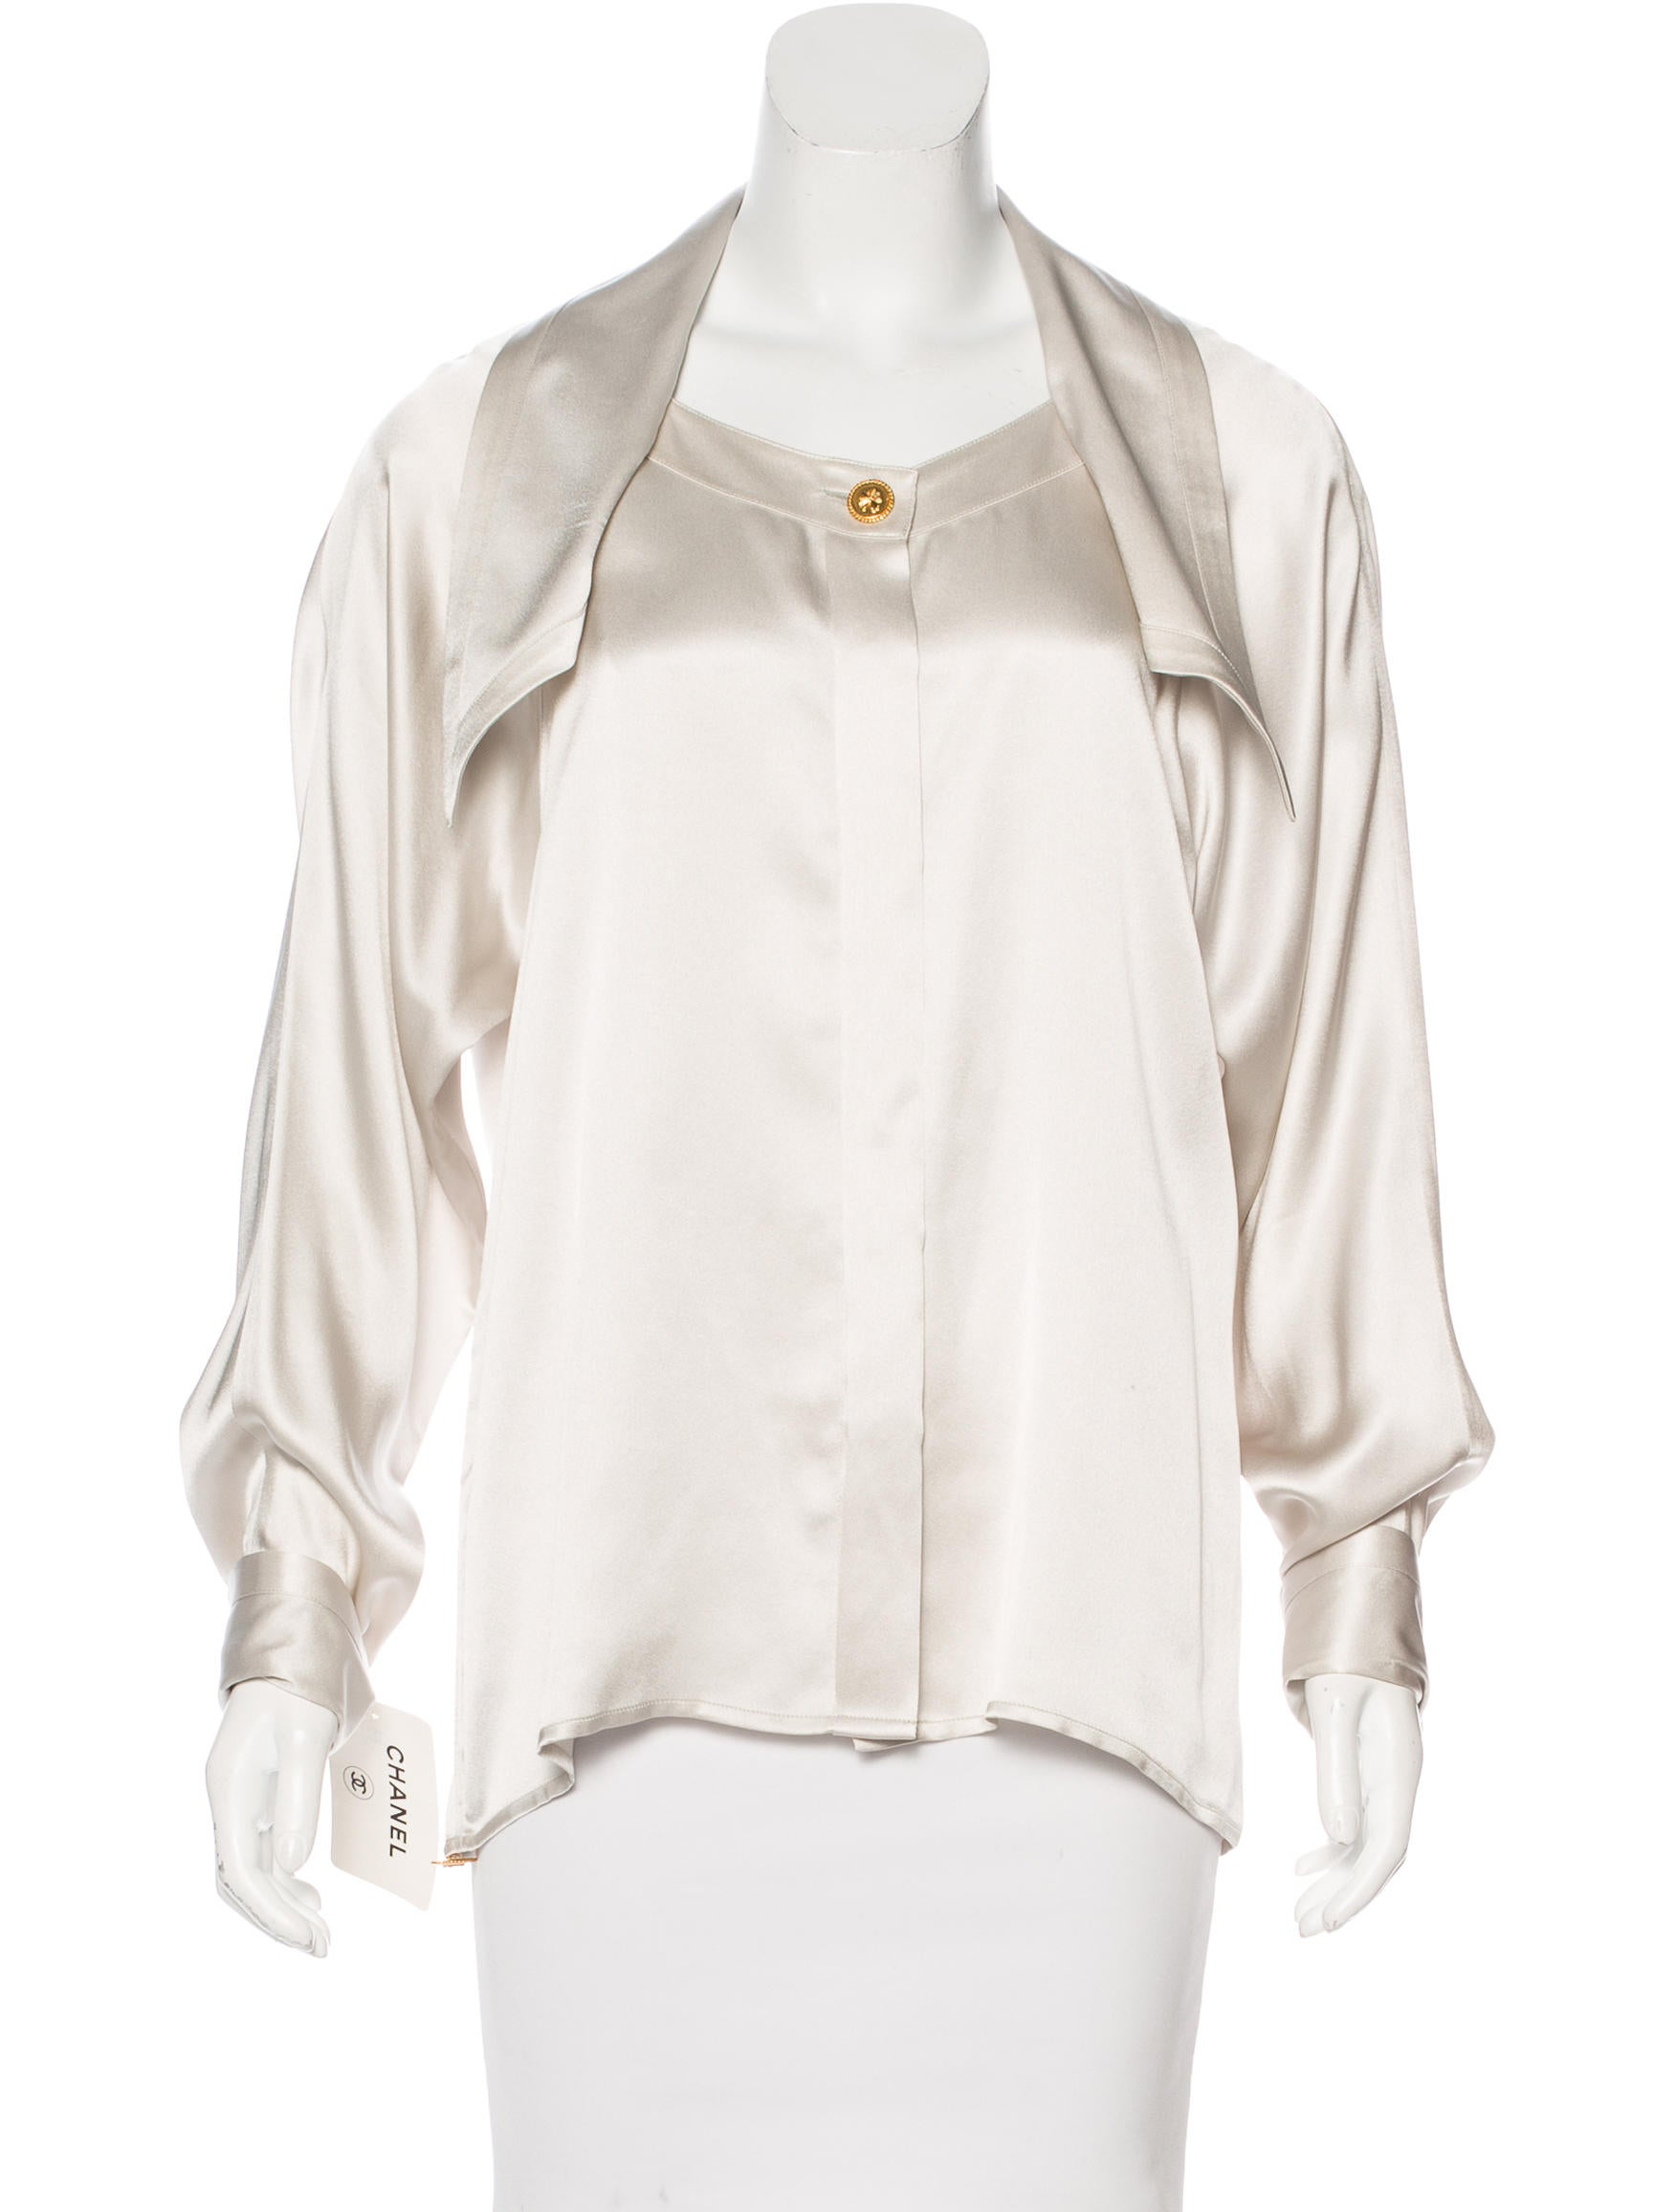 chanel vintage silk blouse w tags clothing cha184456